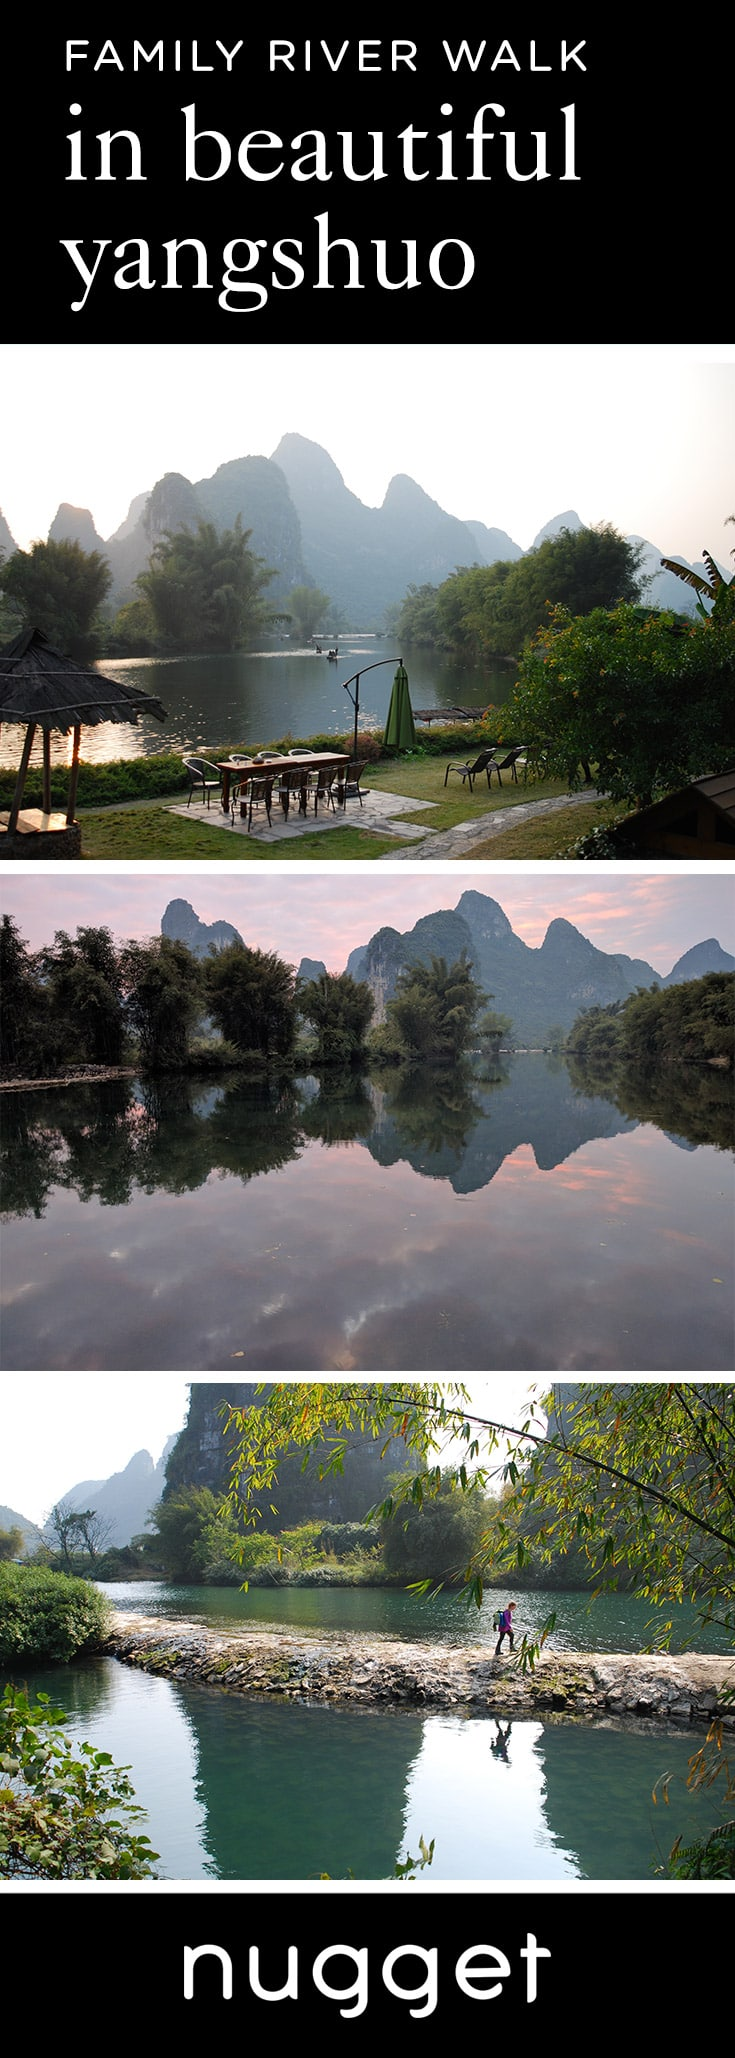 A Family River Walk in Yangshuo